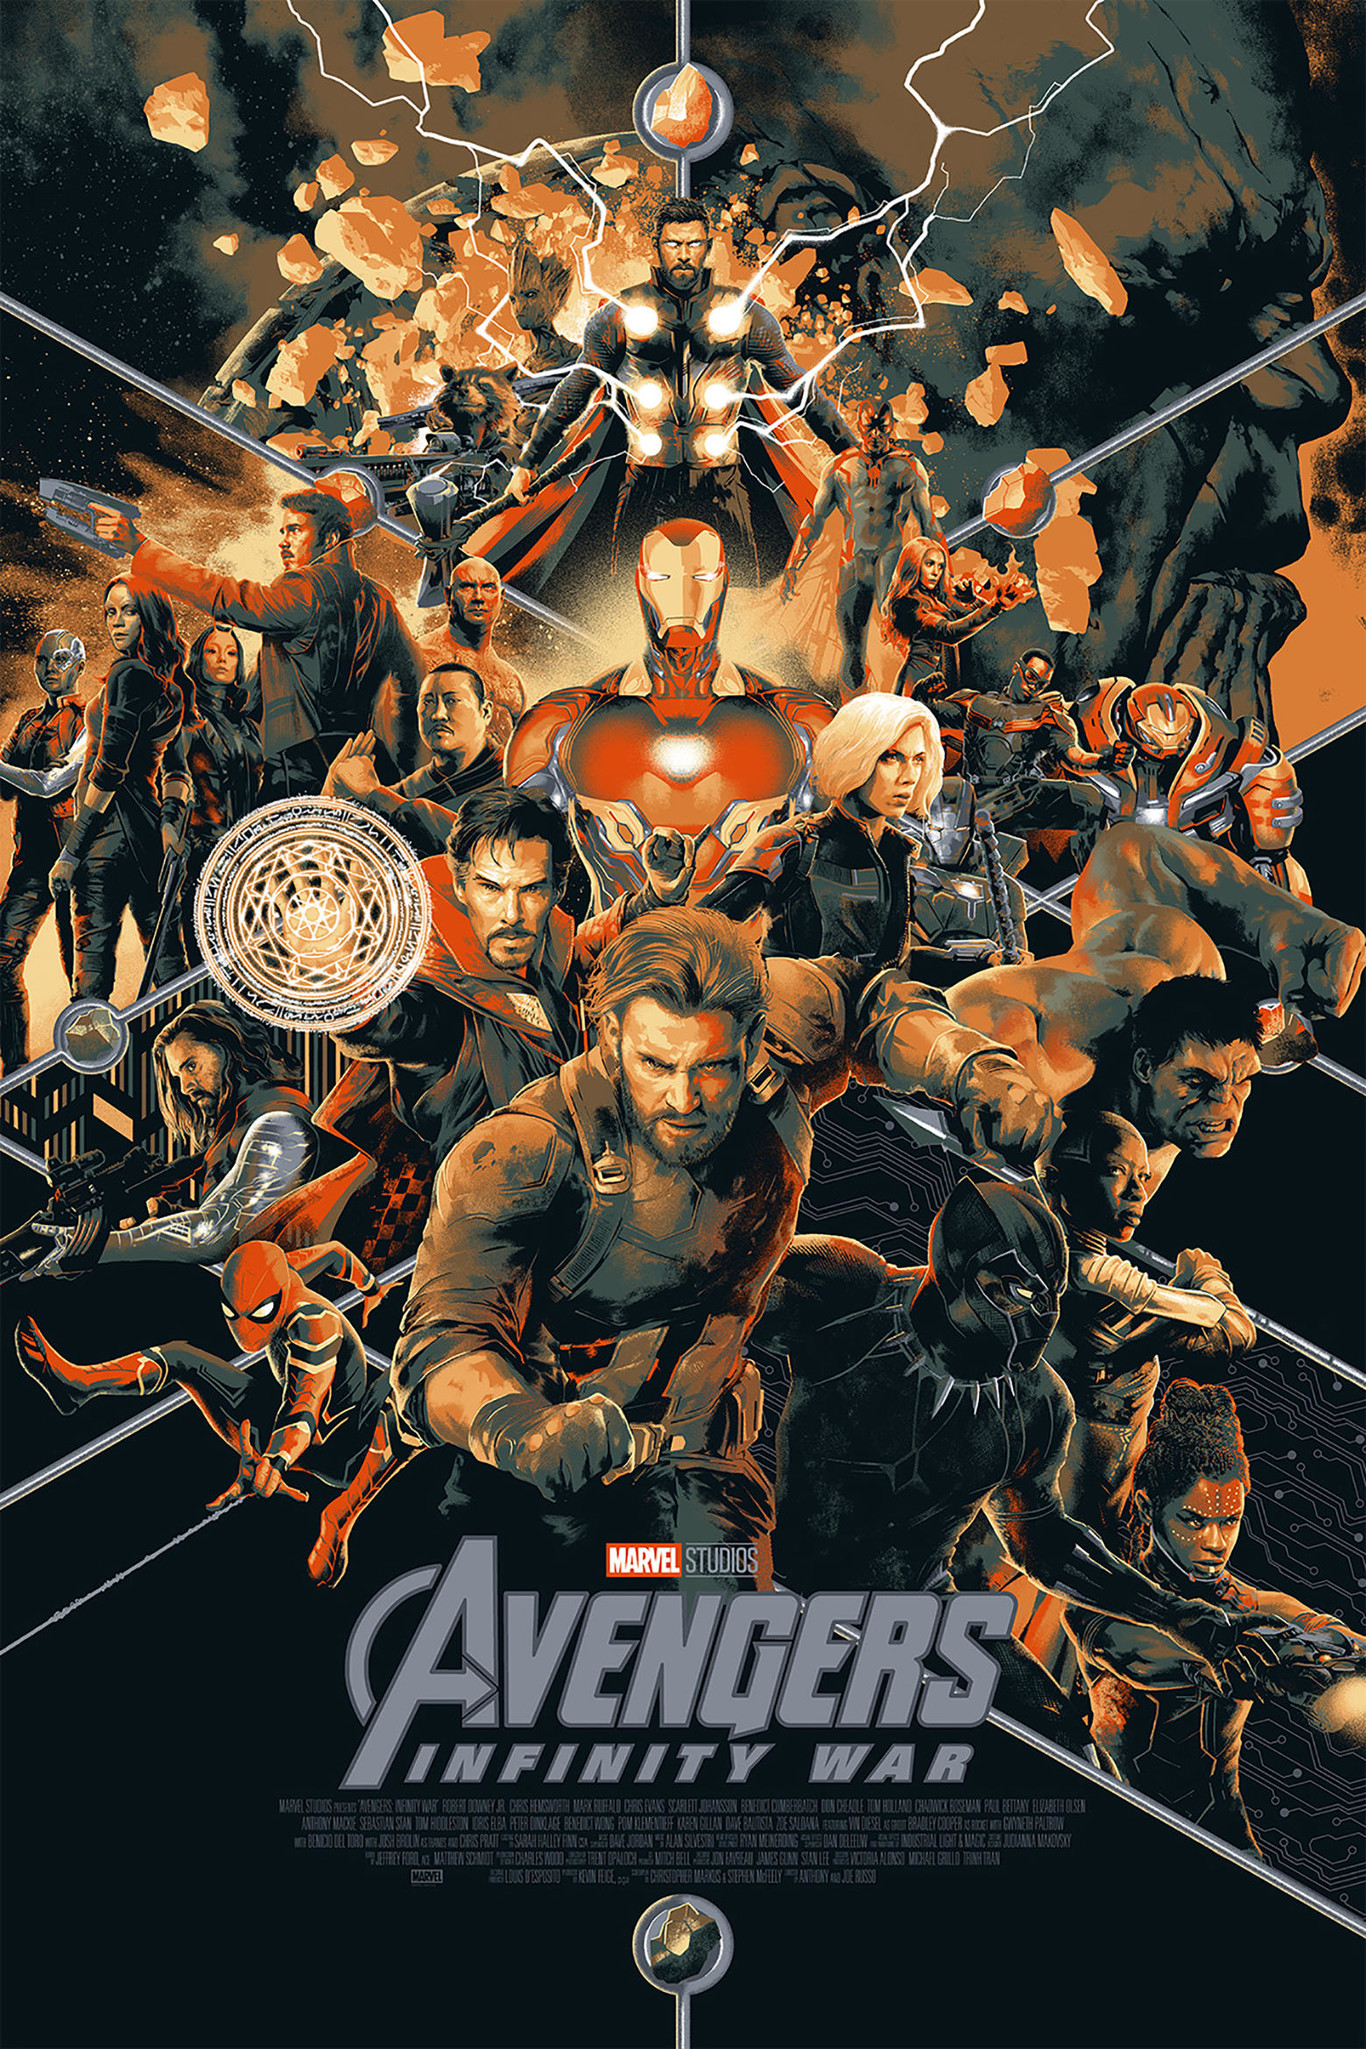 Poster of Infinity War in Comic-Con